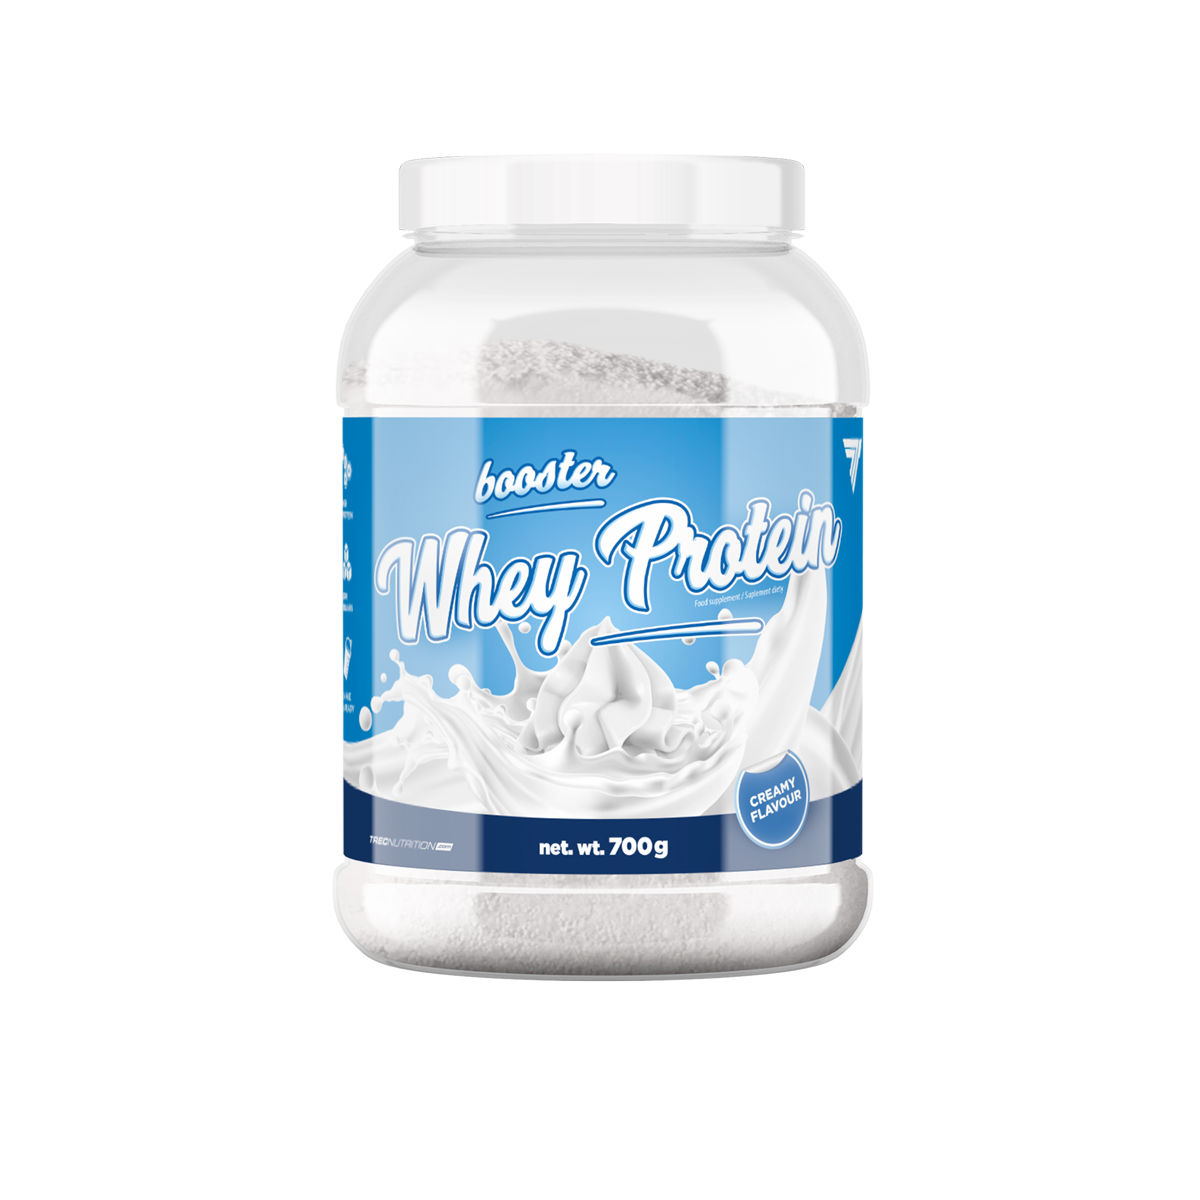 BOOSTER-WHEY-PROTEIN_700g_creamy